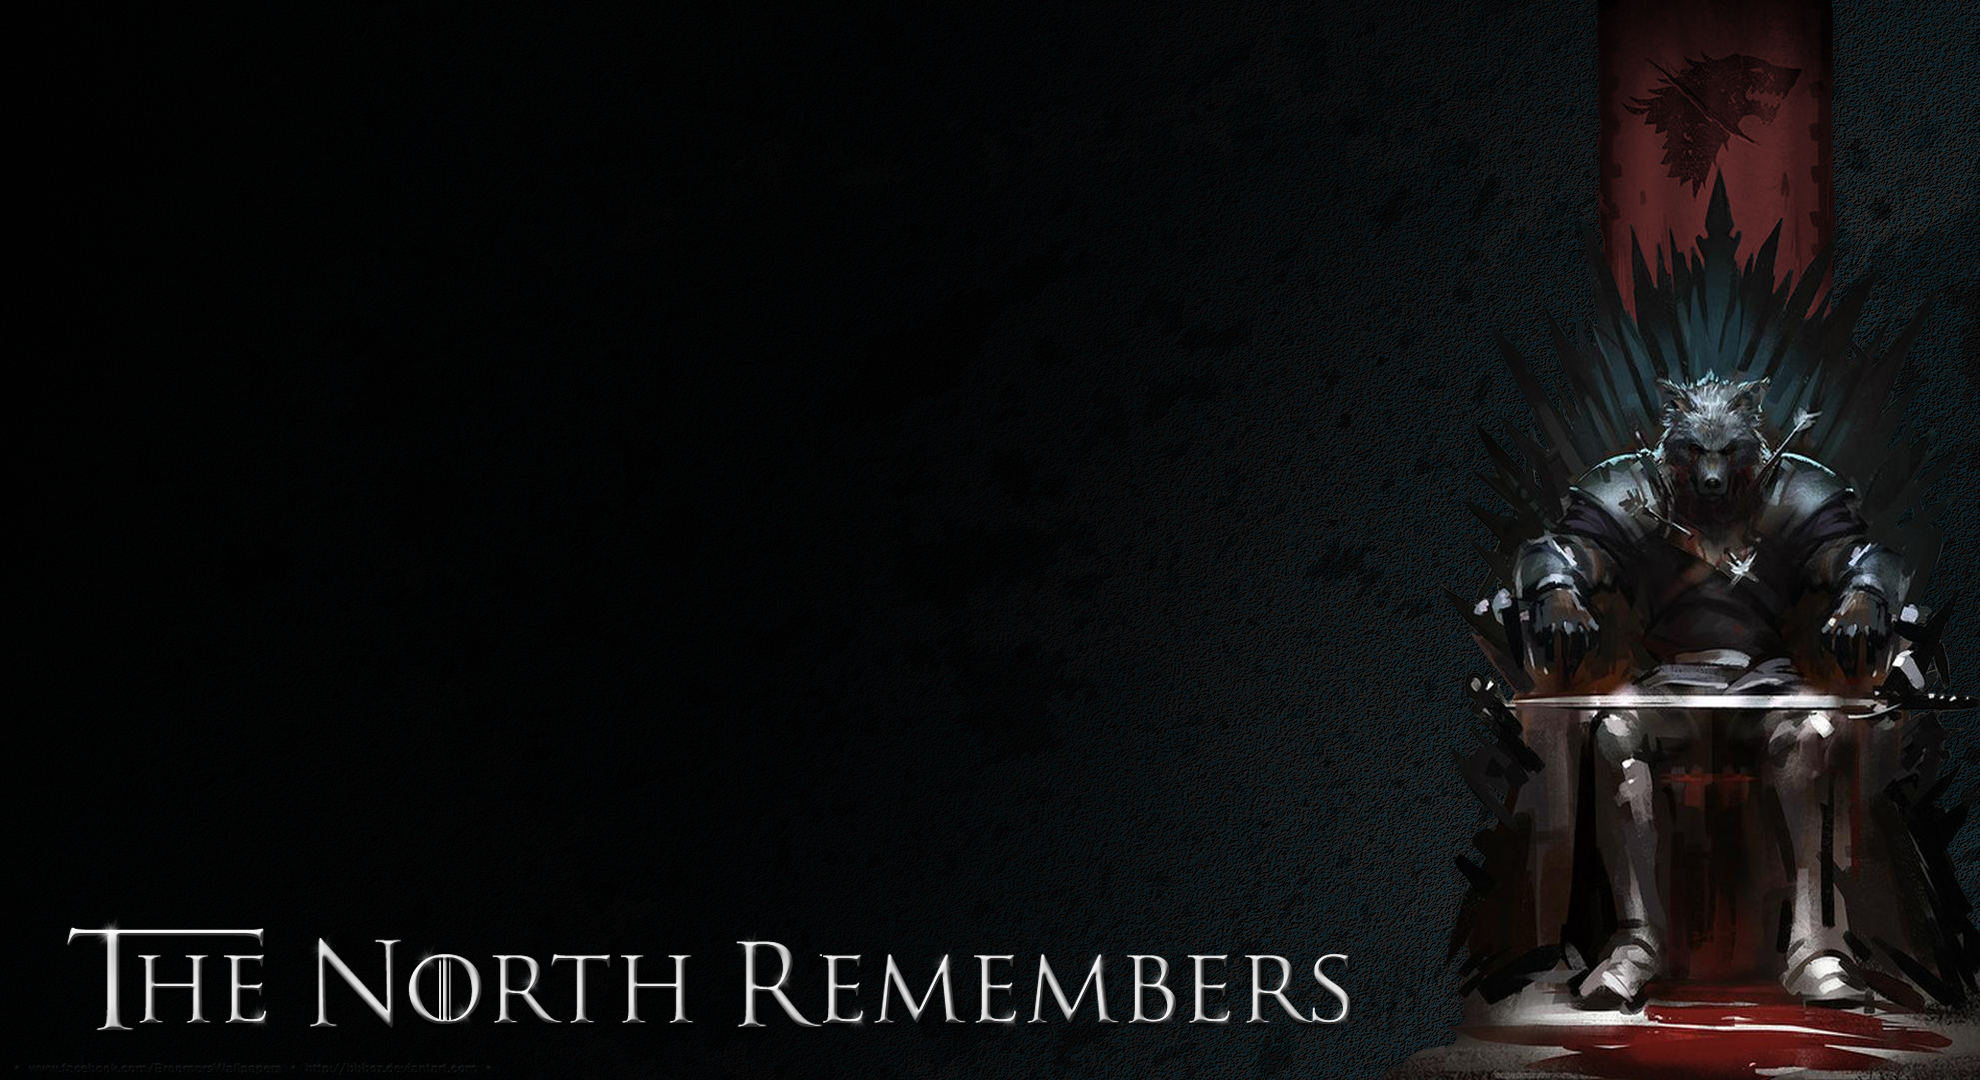 ASOS [ASOS]The North Remembers Wallpaper1920x1080 fc00deviantart 1980x1080